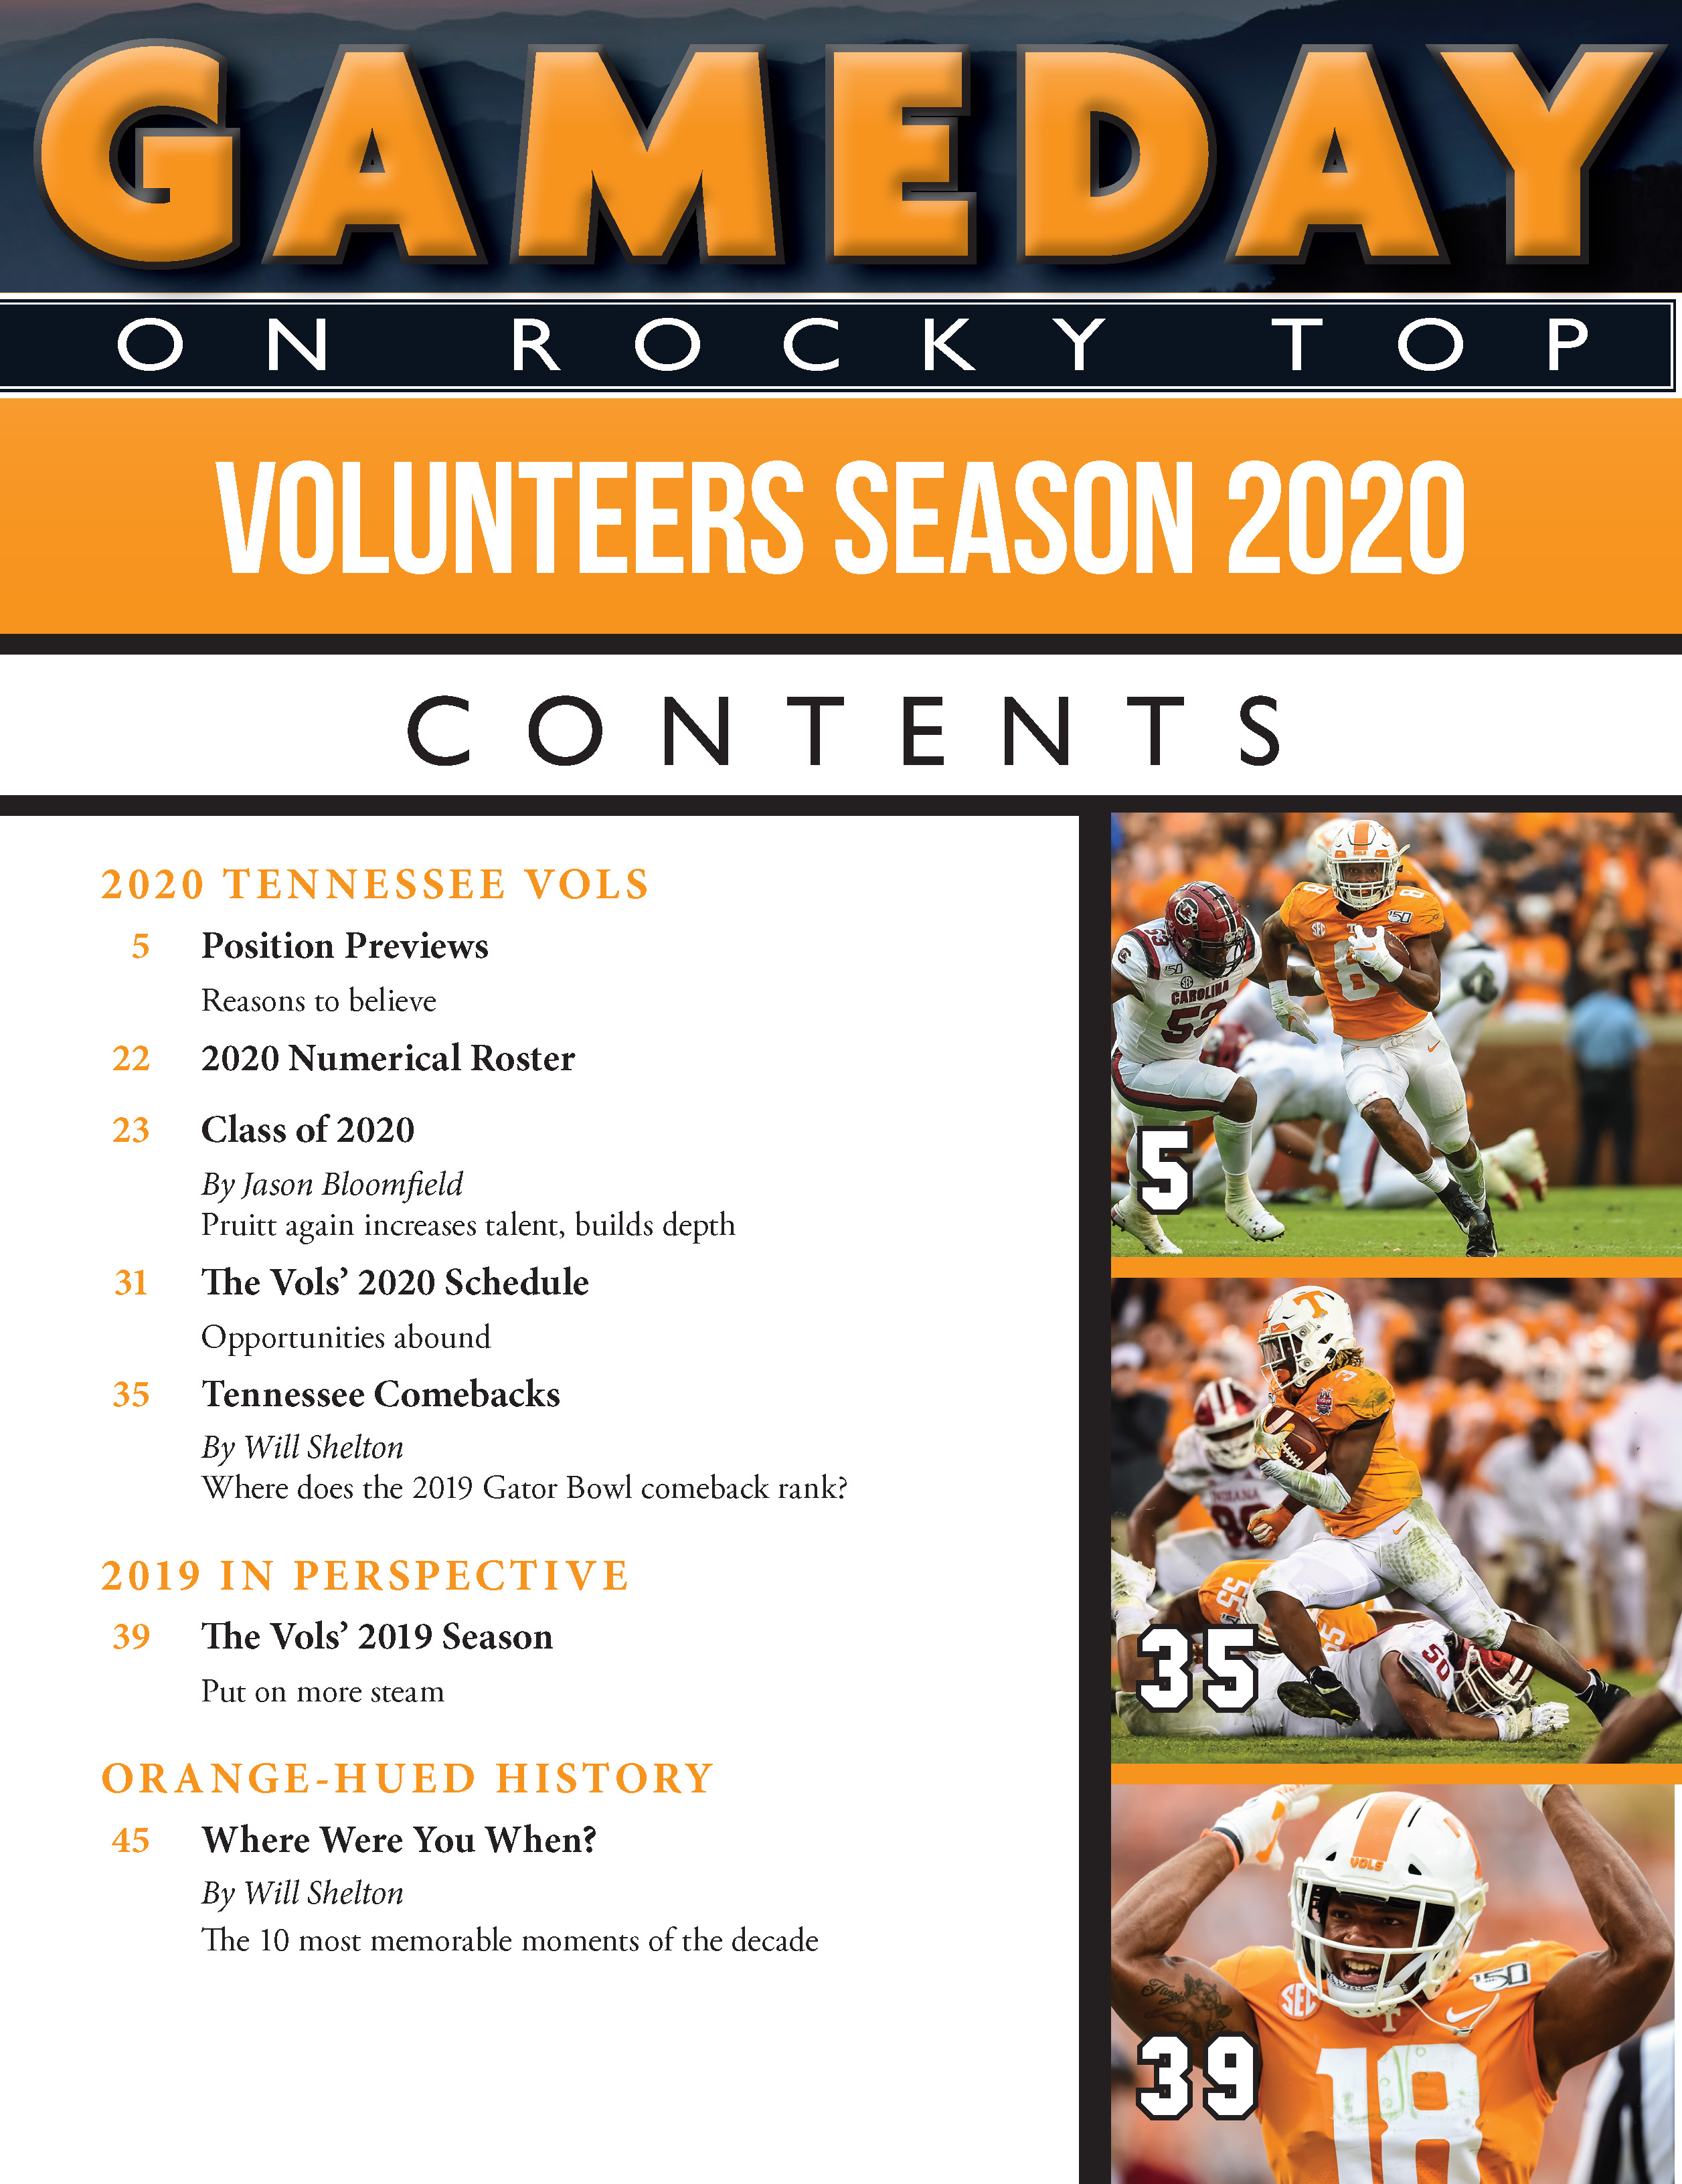 Gameday on Rocky Top College Football Preview Magazine - Table of Contents 1